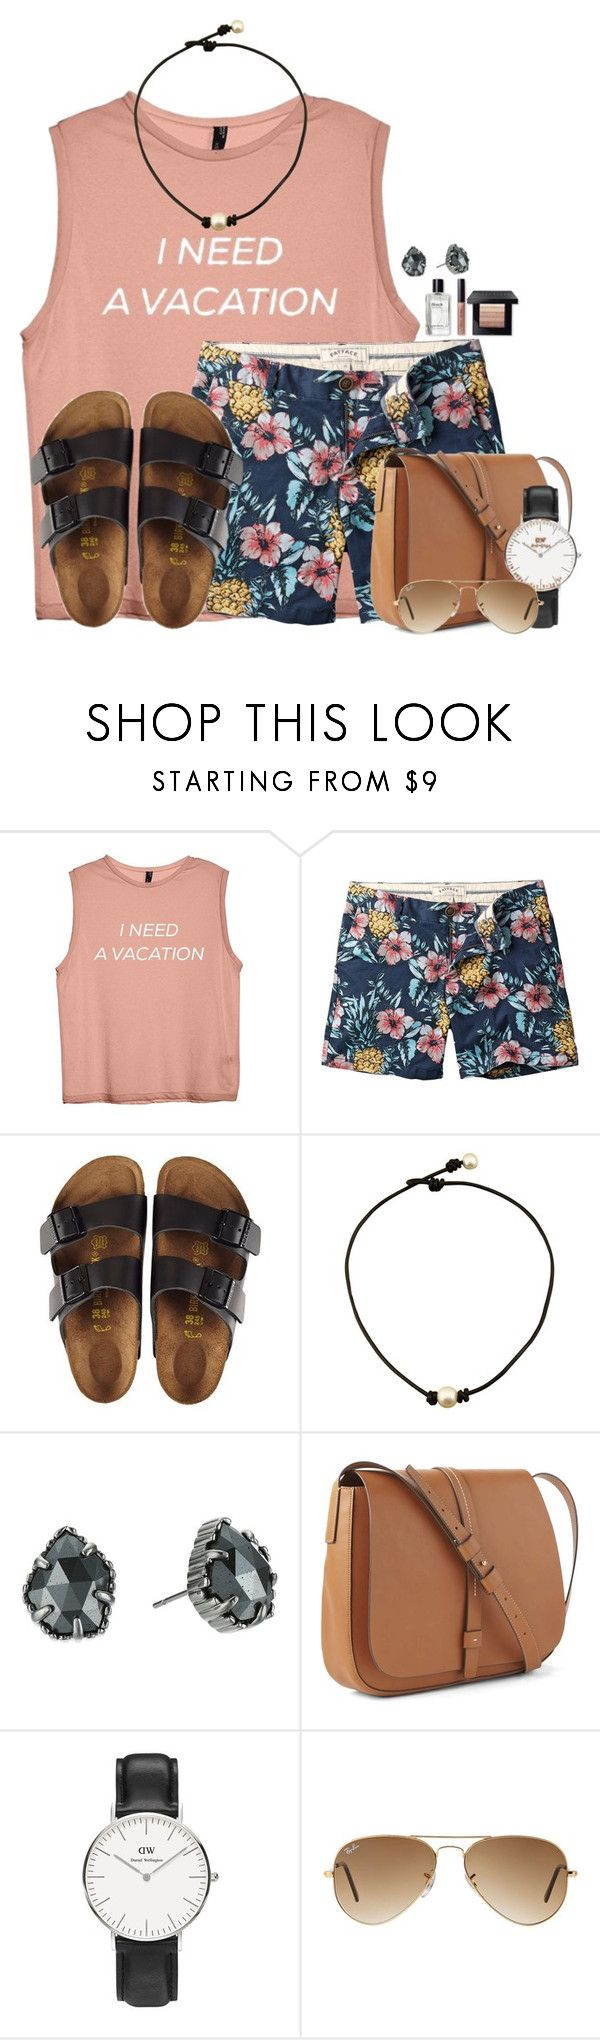 """""""We all need a vacation..."""" by victoriaann34 ❤ liked on Polyvore featuring Fat Face, Birkenstock, Kendra Scott, Gap, Daniel Wellington, Ray-Ban and Bobbi Brown Cosmetics"""